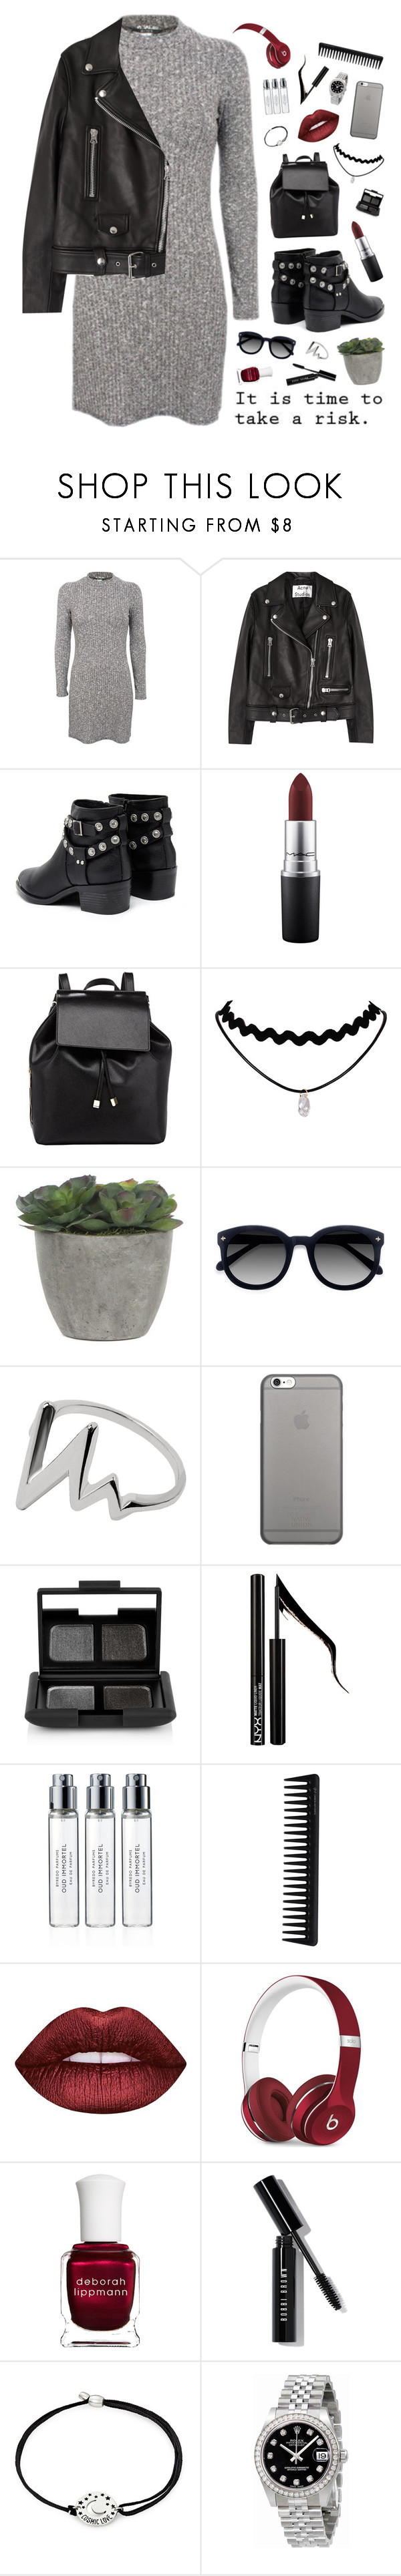 """""""i'm the puzzle you can't figure out"""" by silvanacavero ❤ liked on Polyvore featuring Pilot, Acne Studios, Senso, MAC Cosmetics, Barneys New York, Lux-Art Silks, Ace, Native Union, NARS Cosmetics and Forever 21"""